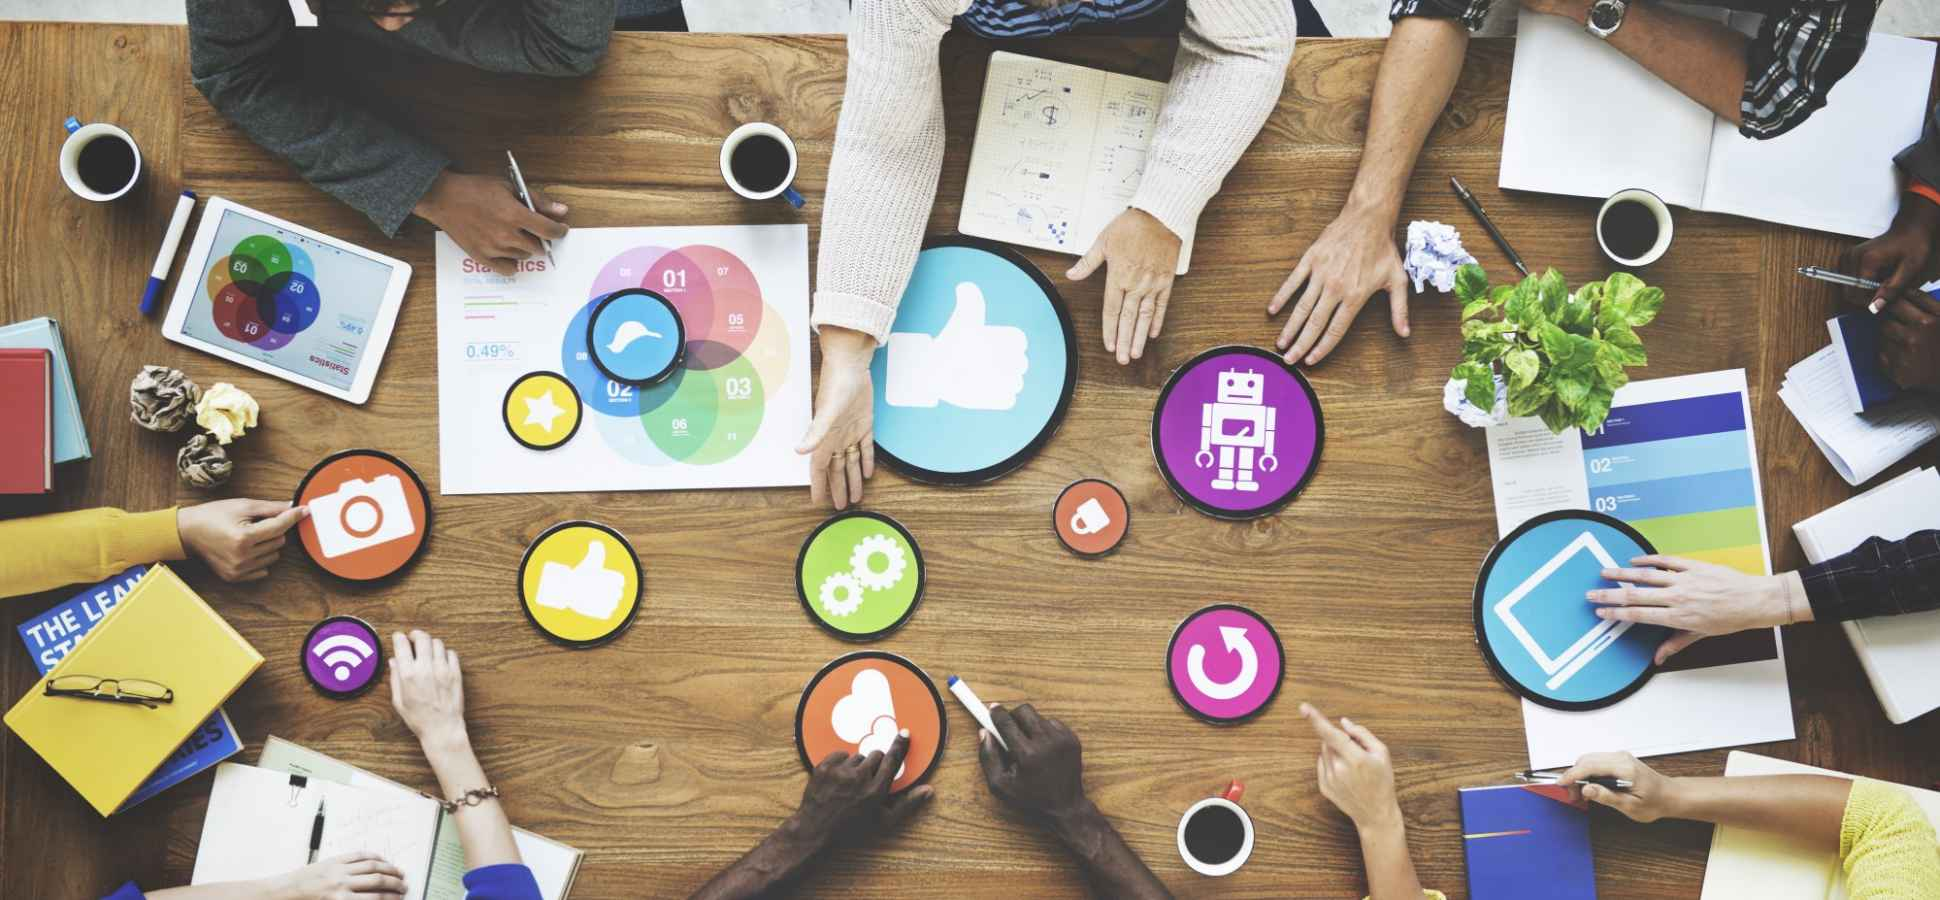 How to Create a Powerful Social Network Platform in 8 Steps | Inc.com